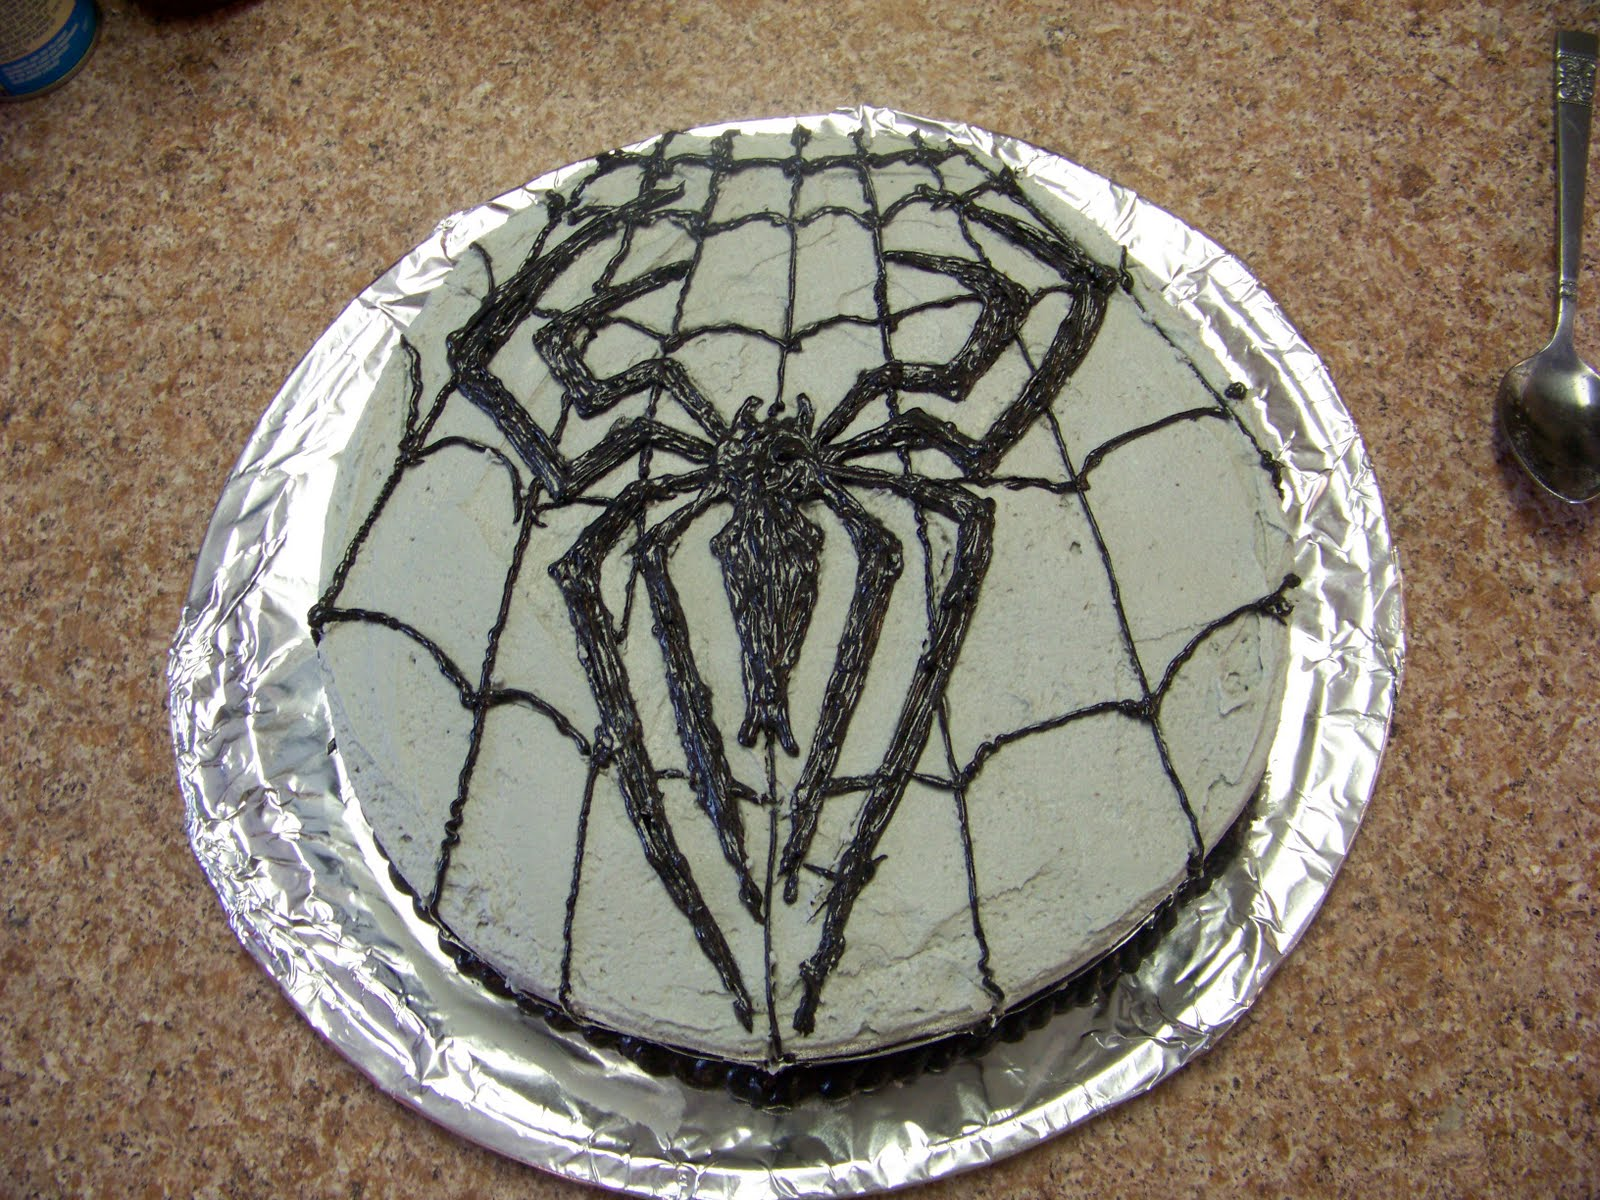 Black spiderman cakes - photo#12